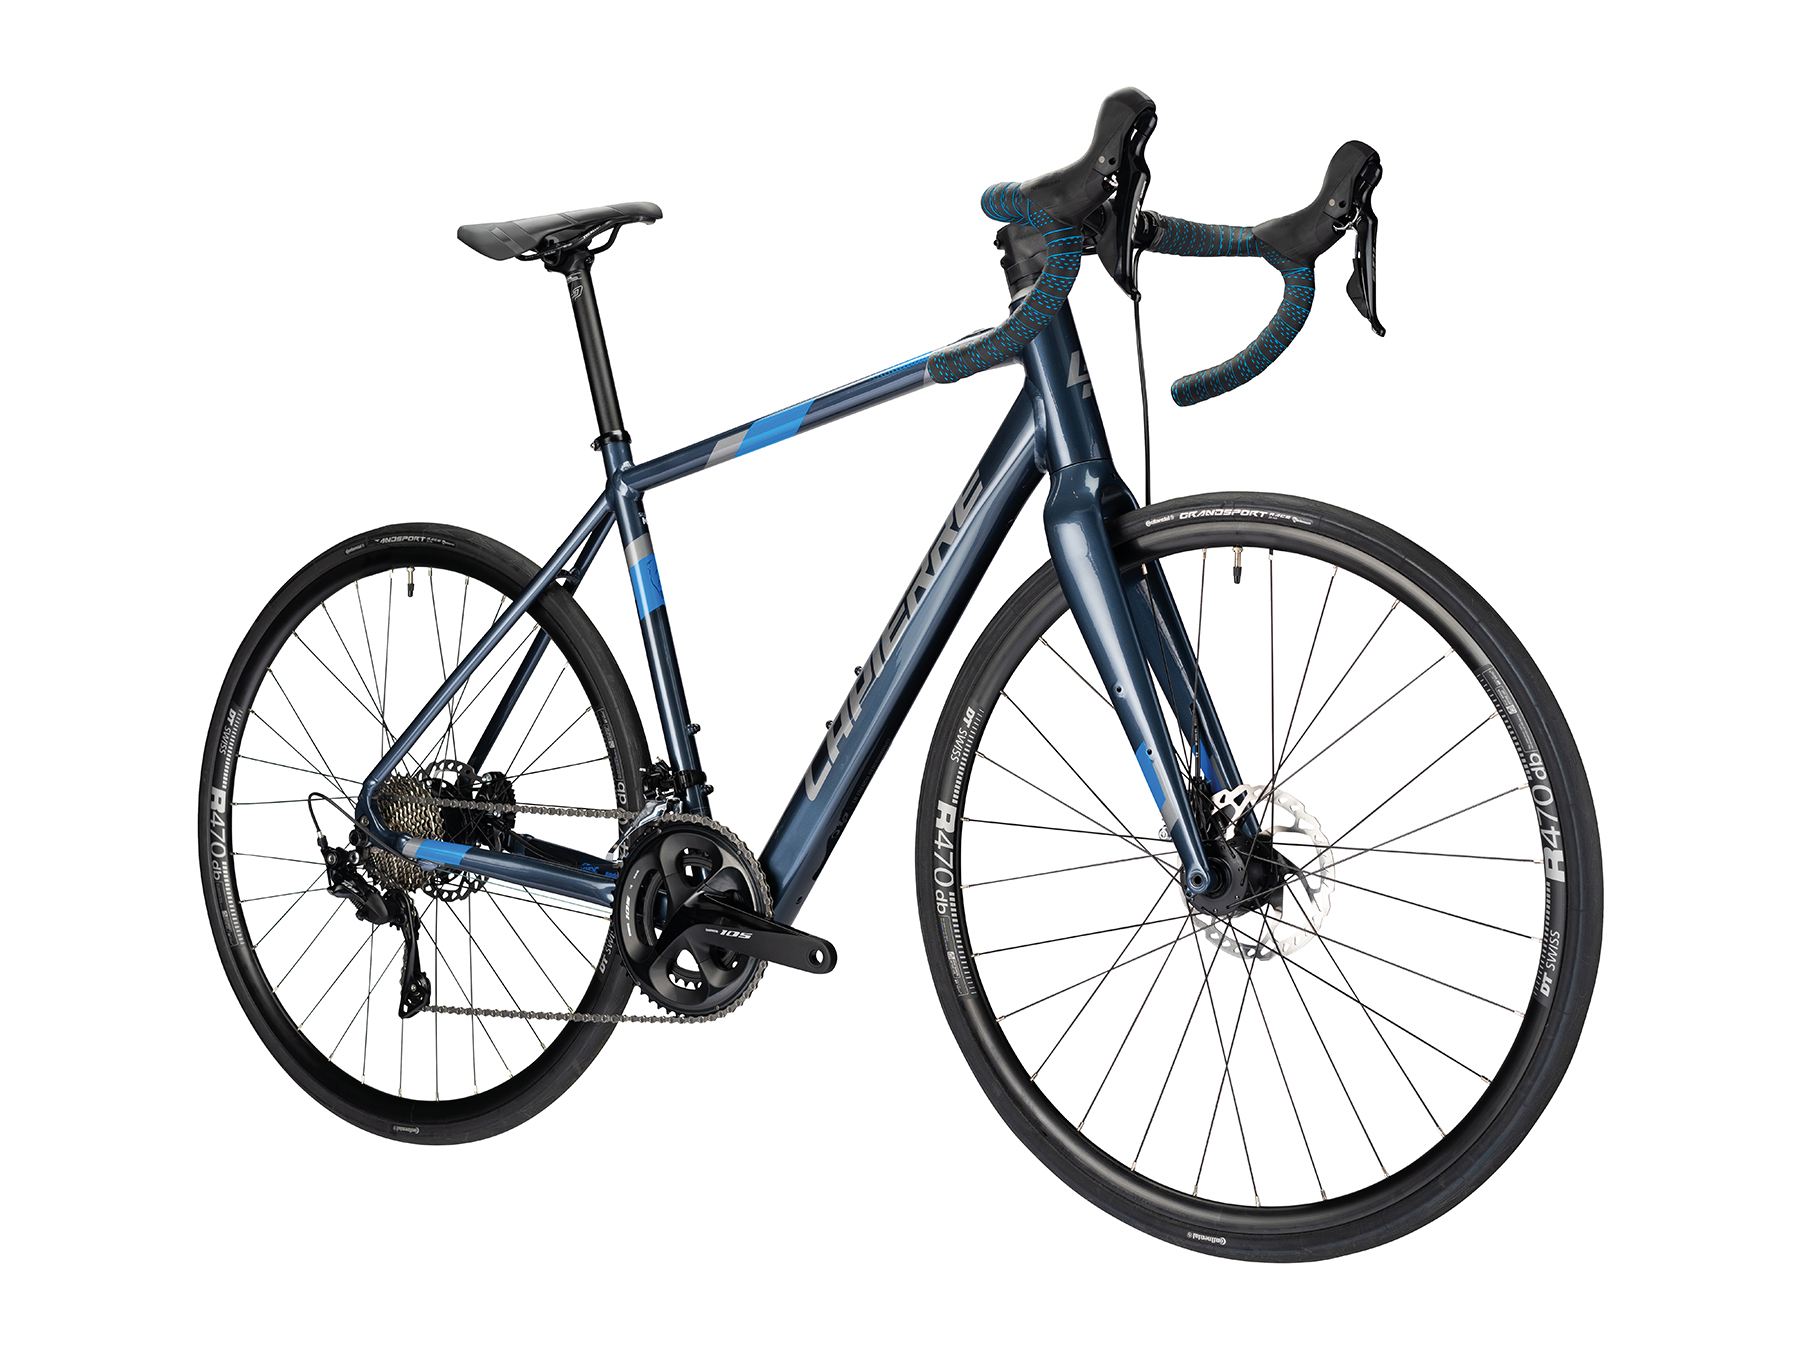 Lapierrre eSensium AL 500 2020 Road Bike with Electric Assist